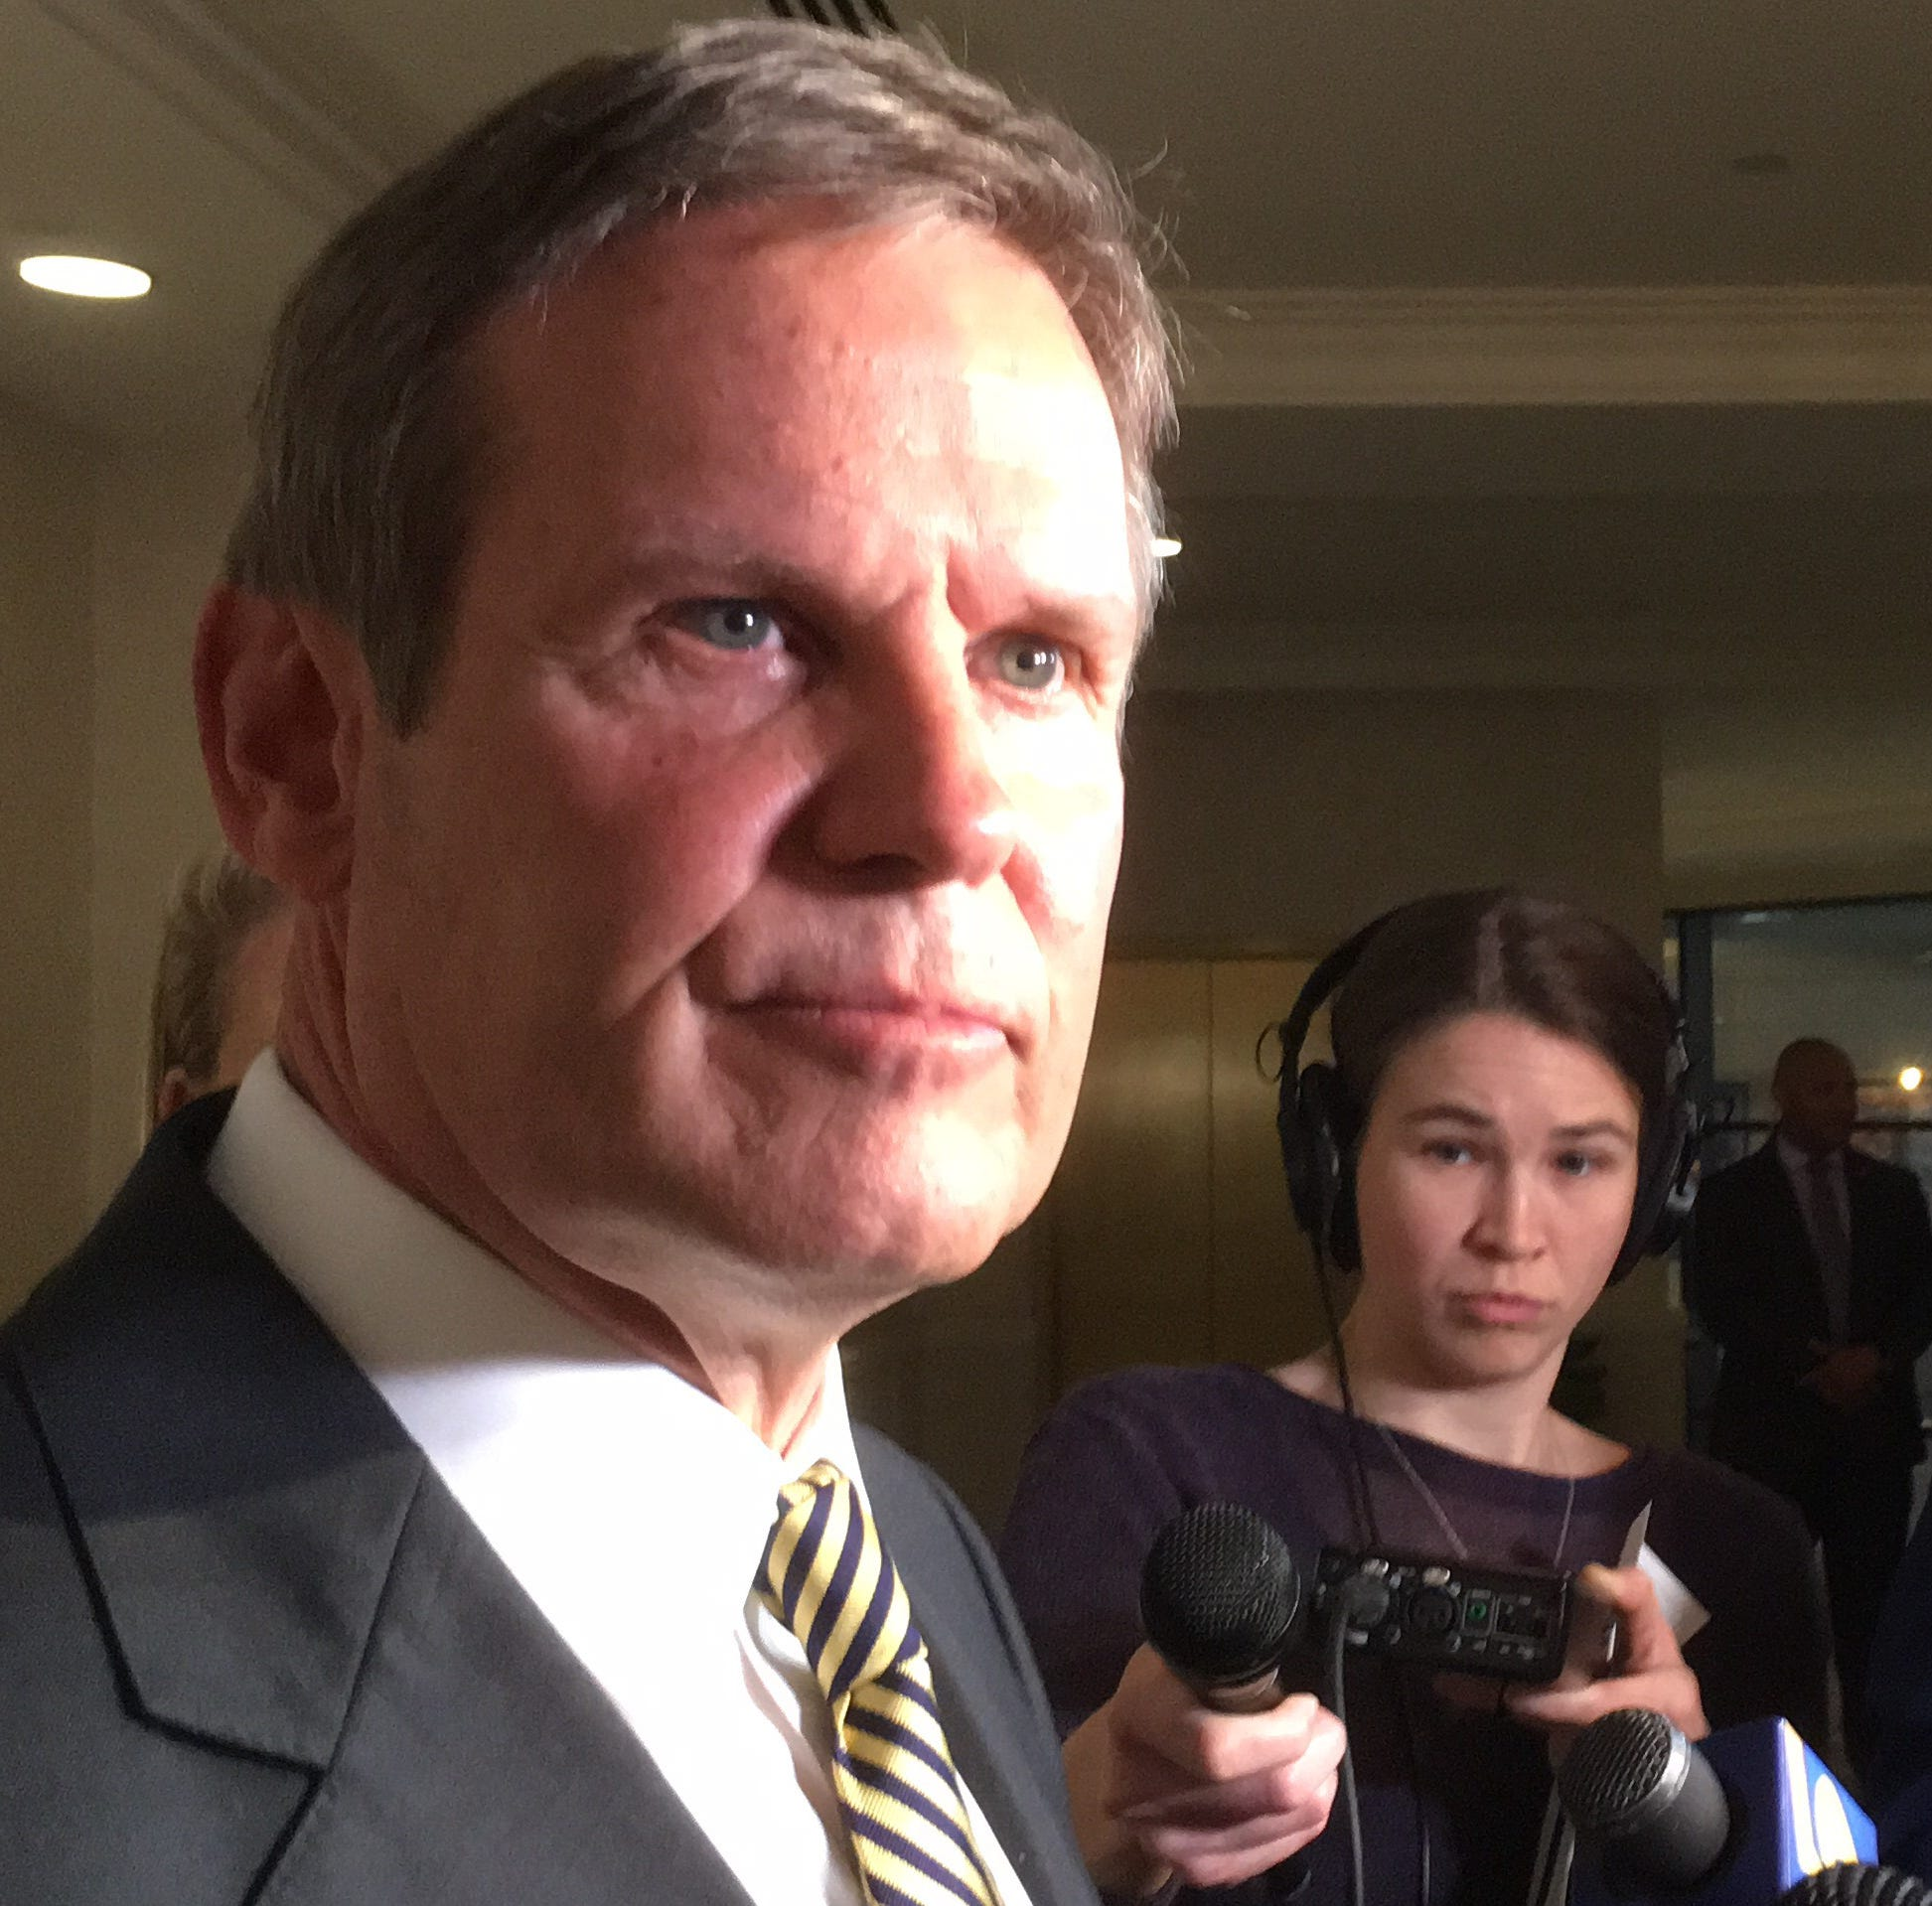 Gov. Bill Lee says he's still deliberating over fate of Donnie Johnson, set to be executed Thursday